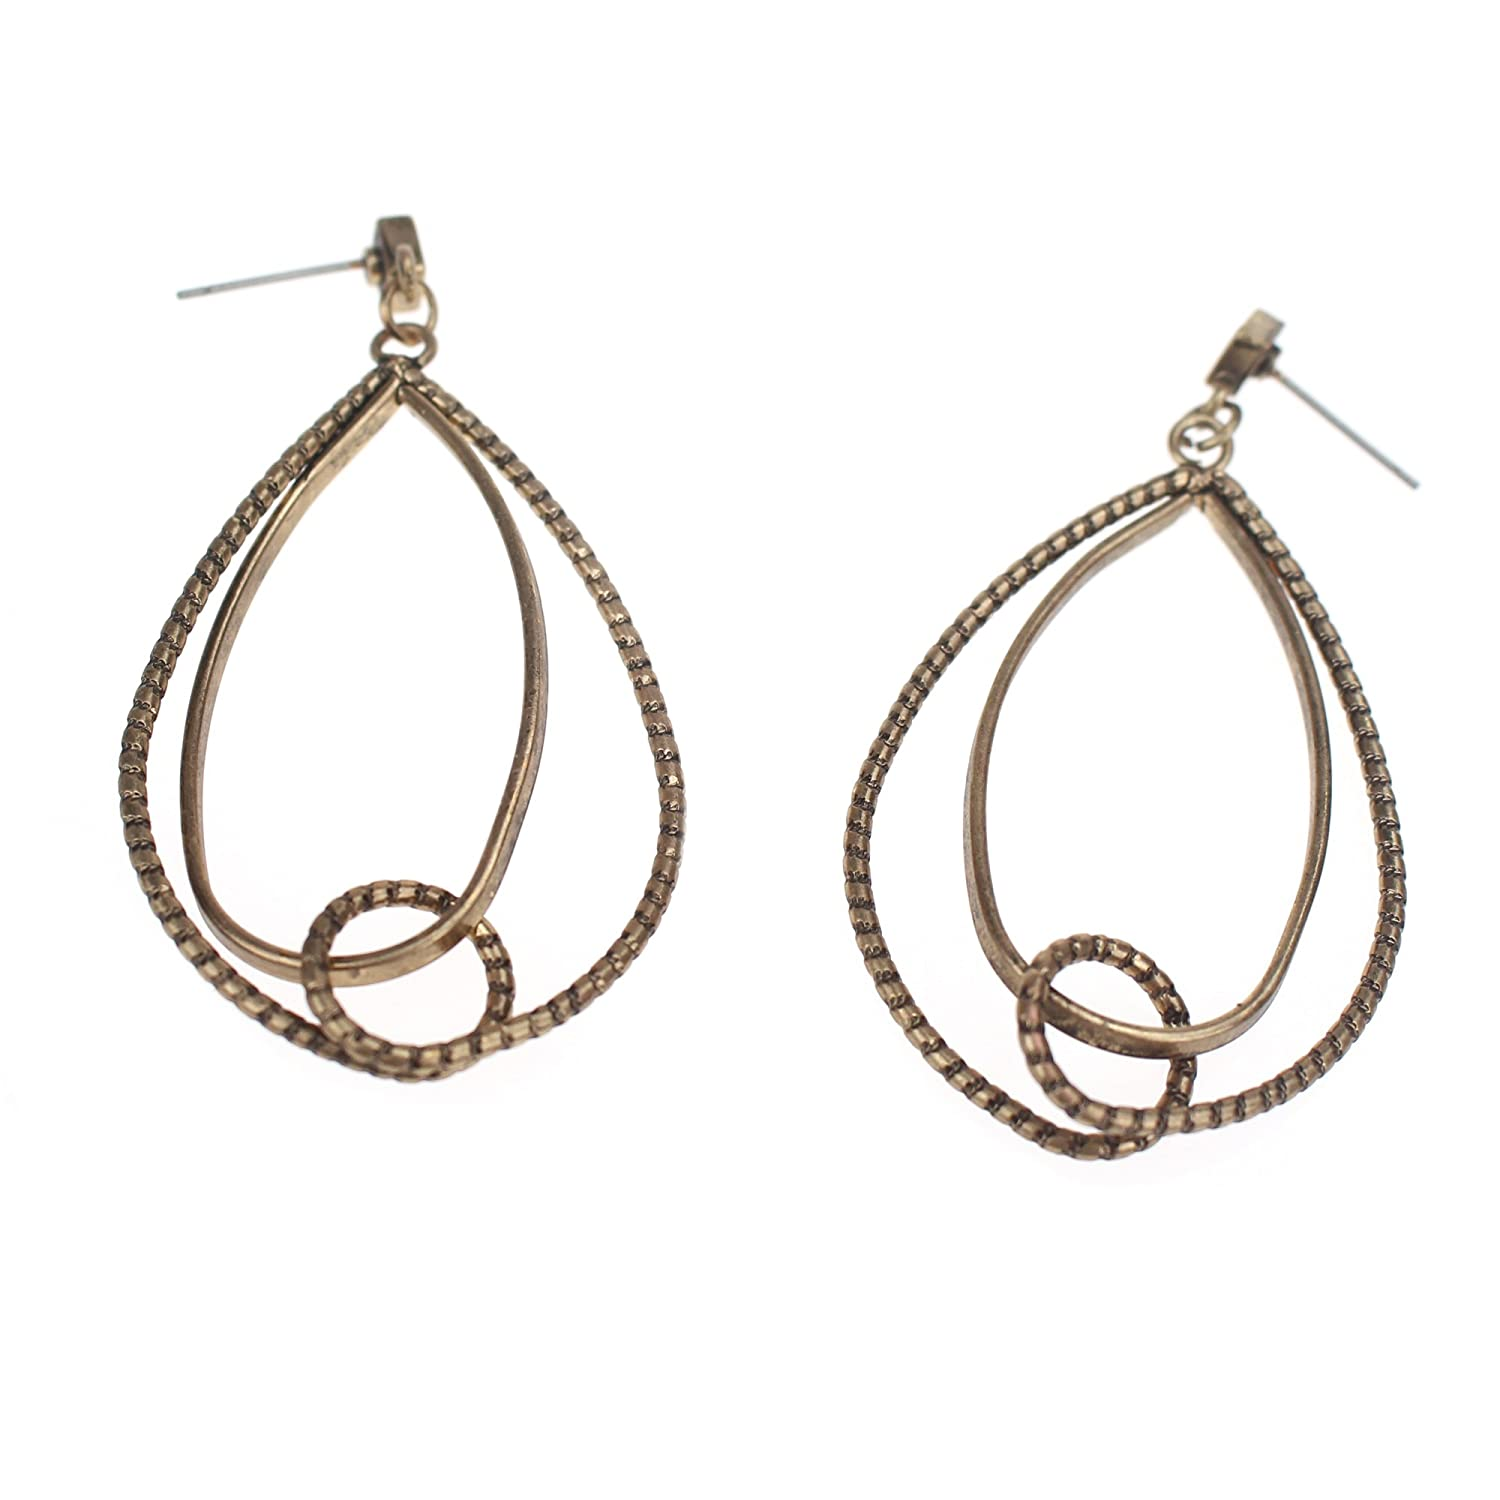 Coolcoco Luxury Fashion Tassel Earrings for Lady Woman Girls Prime